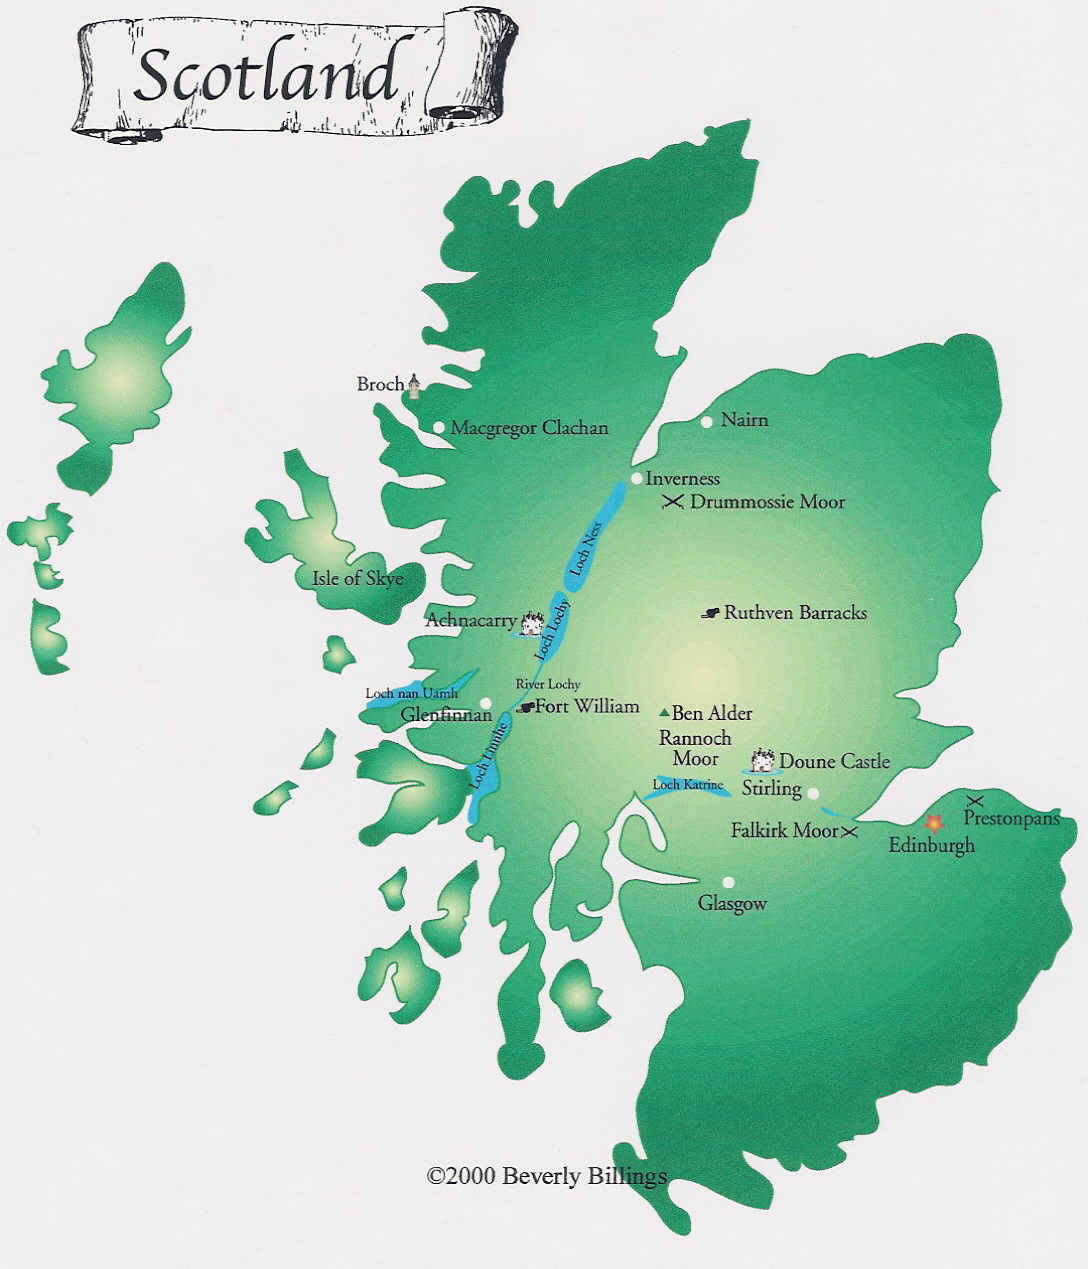 Map of Scotland to accompany The Scottish Thistle by Cindy Vallar